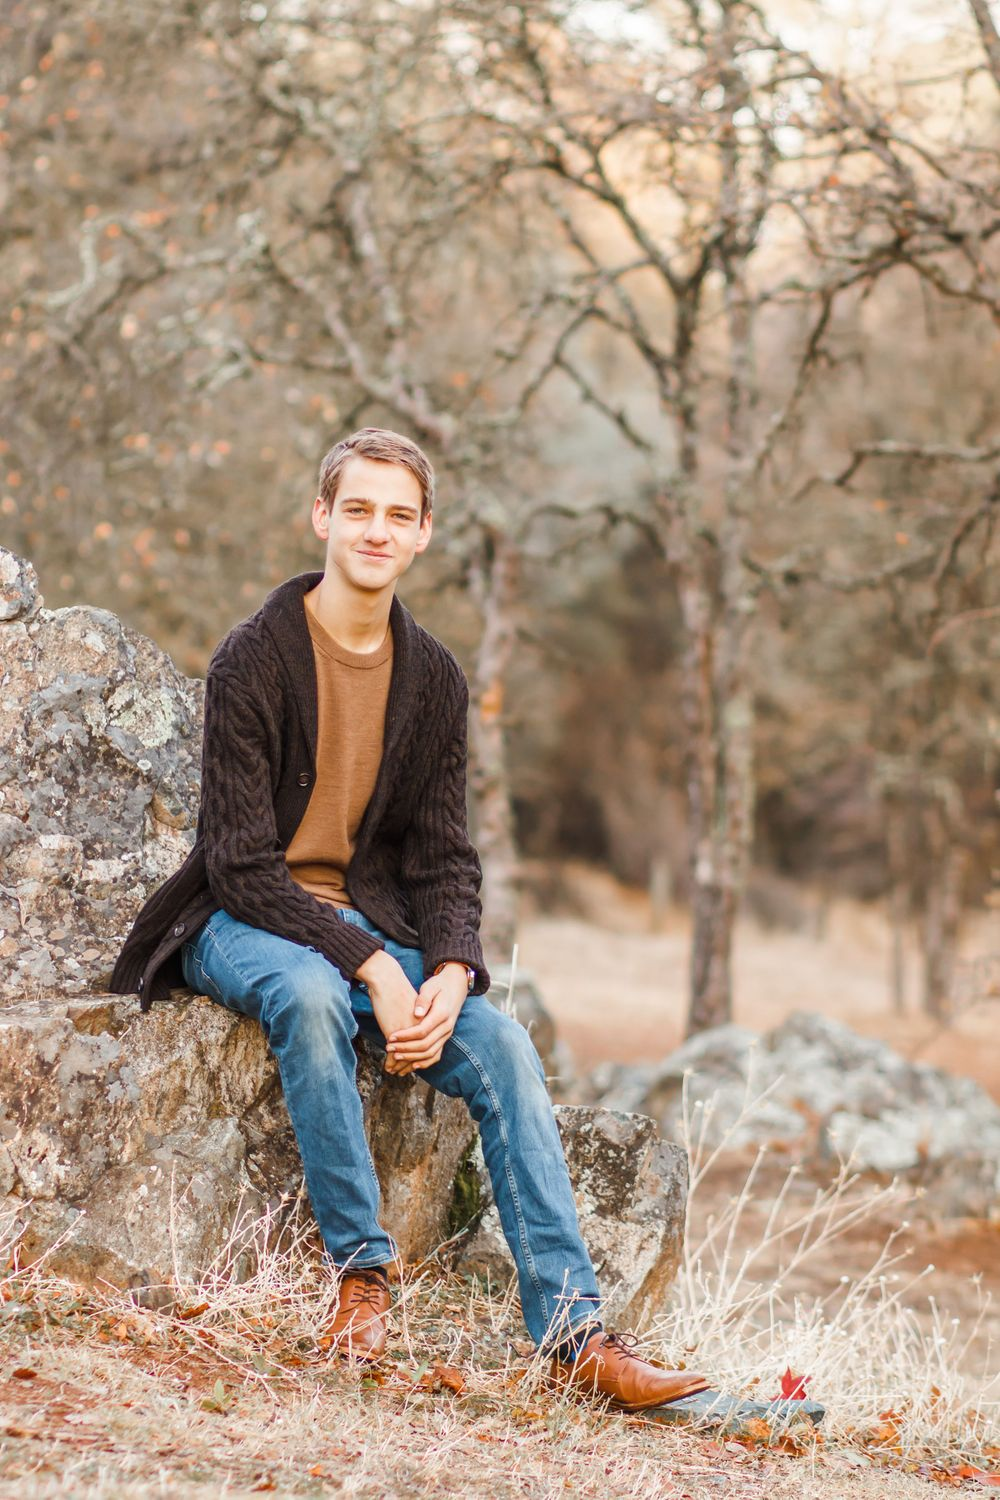 High school senior boy in a sweater and jeans sitting on a rock in a park